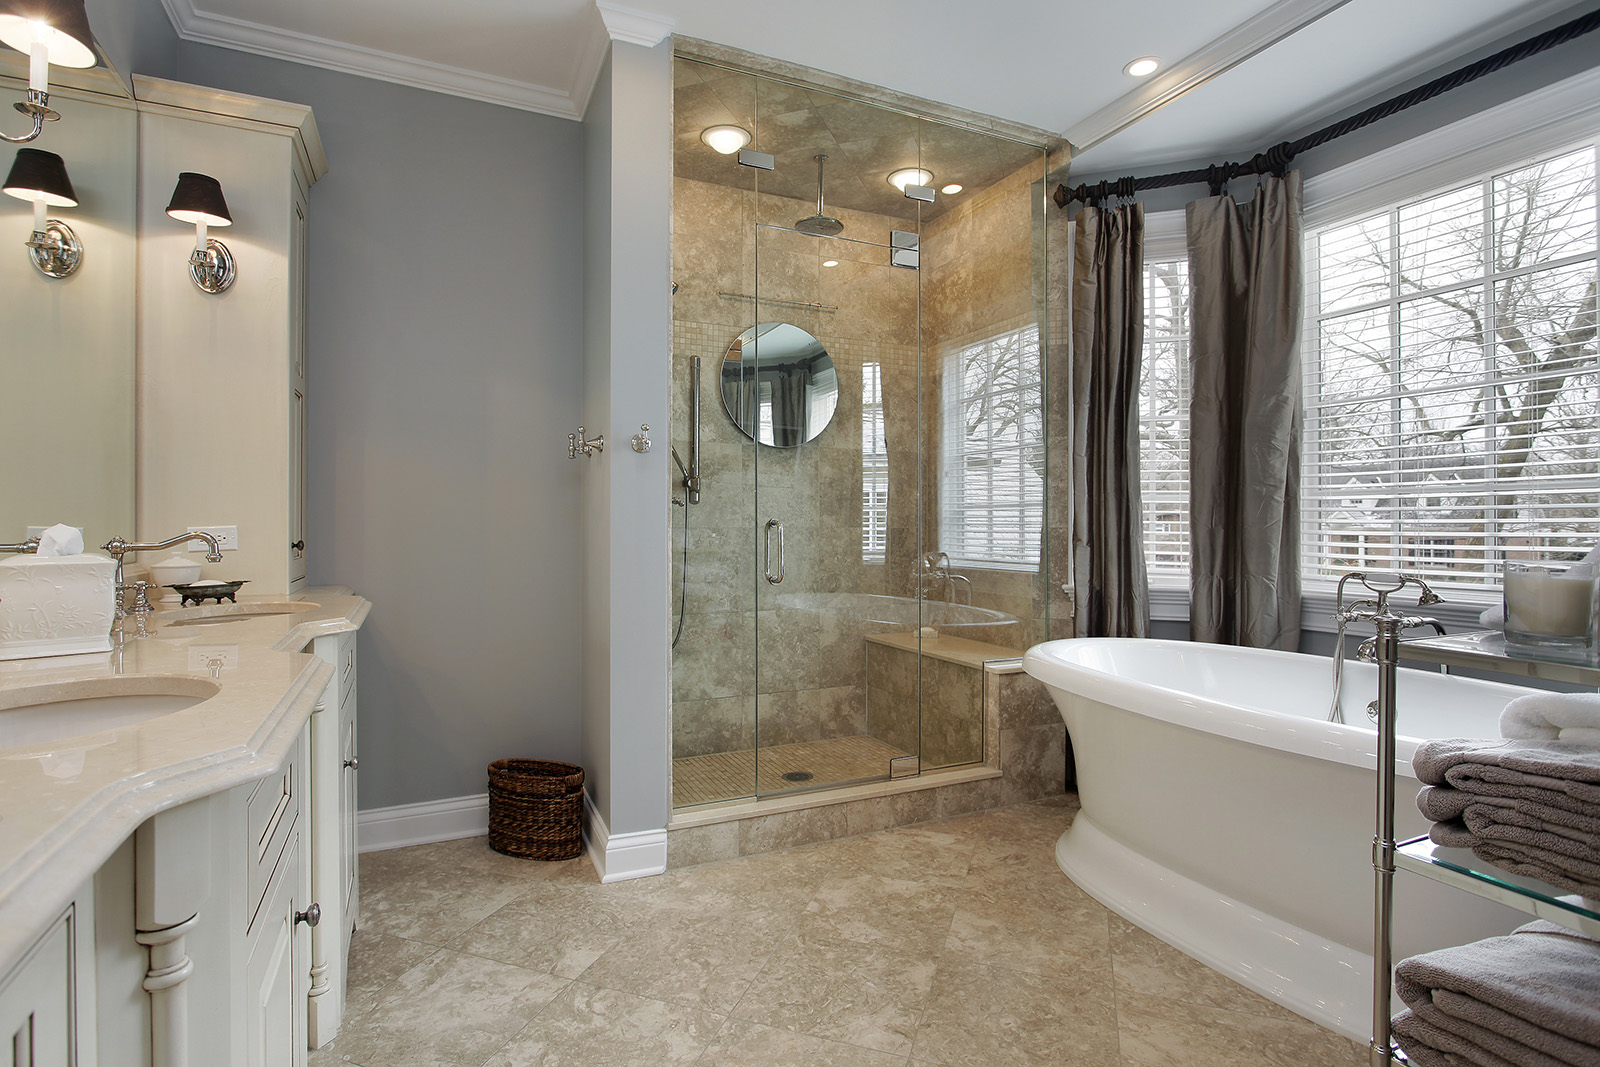 Bathroom Remodeling Leads Amazing Bathroom Remodel Leads To Increased Home Value  New England . Inspiration